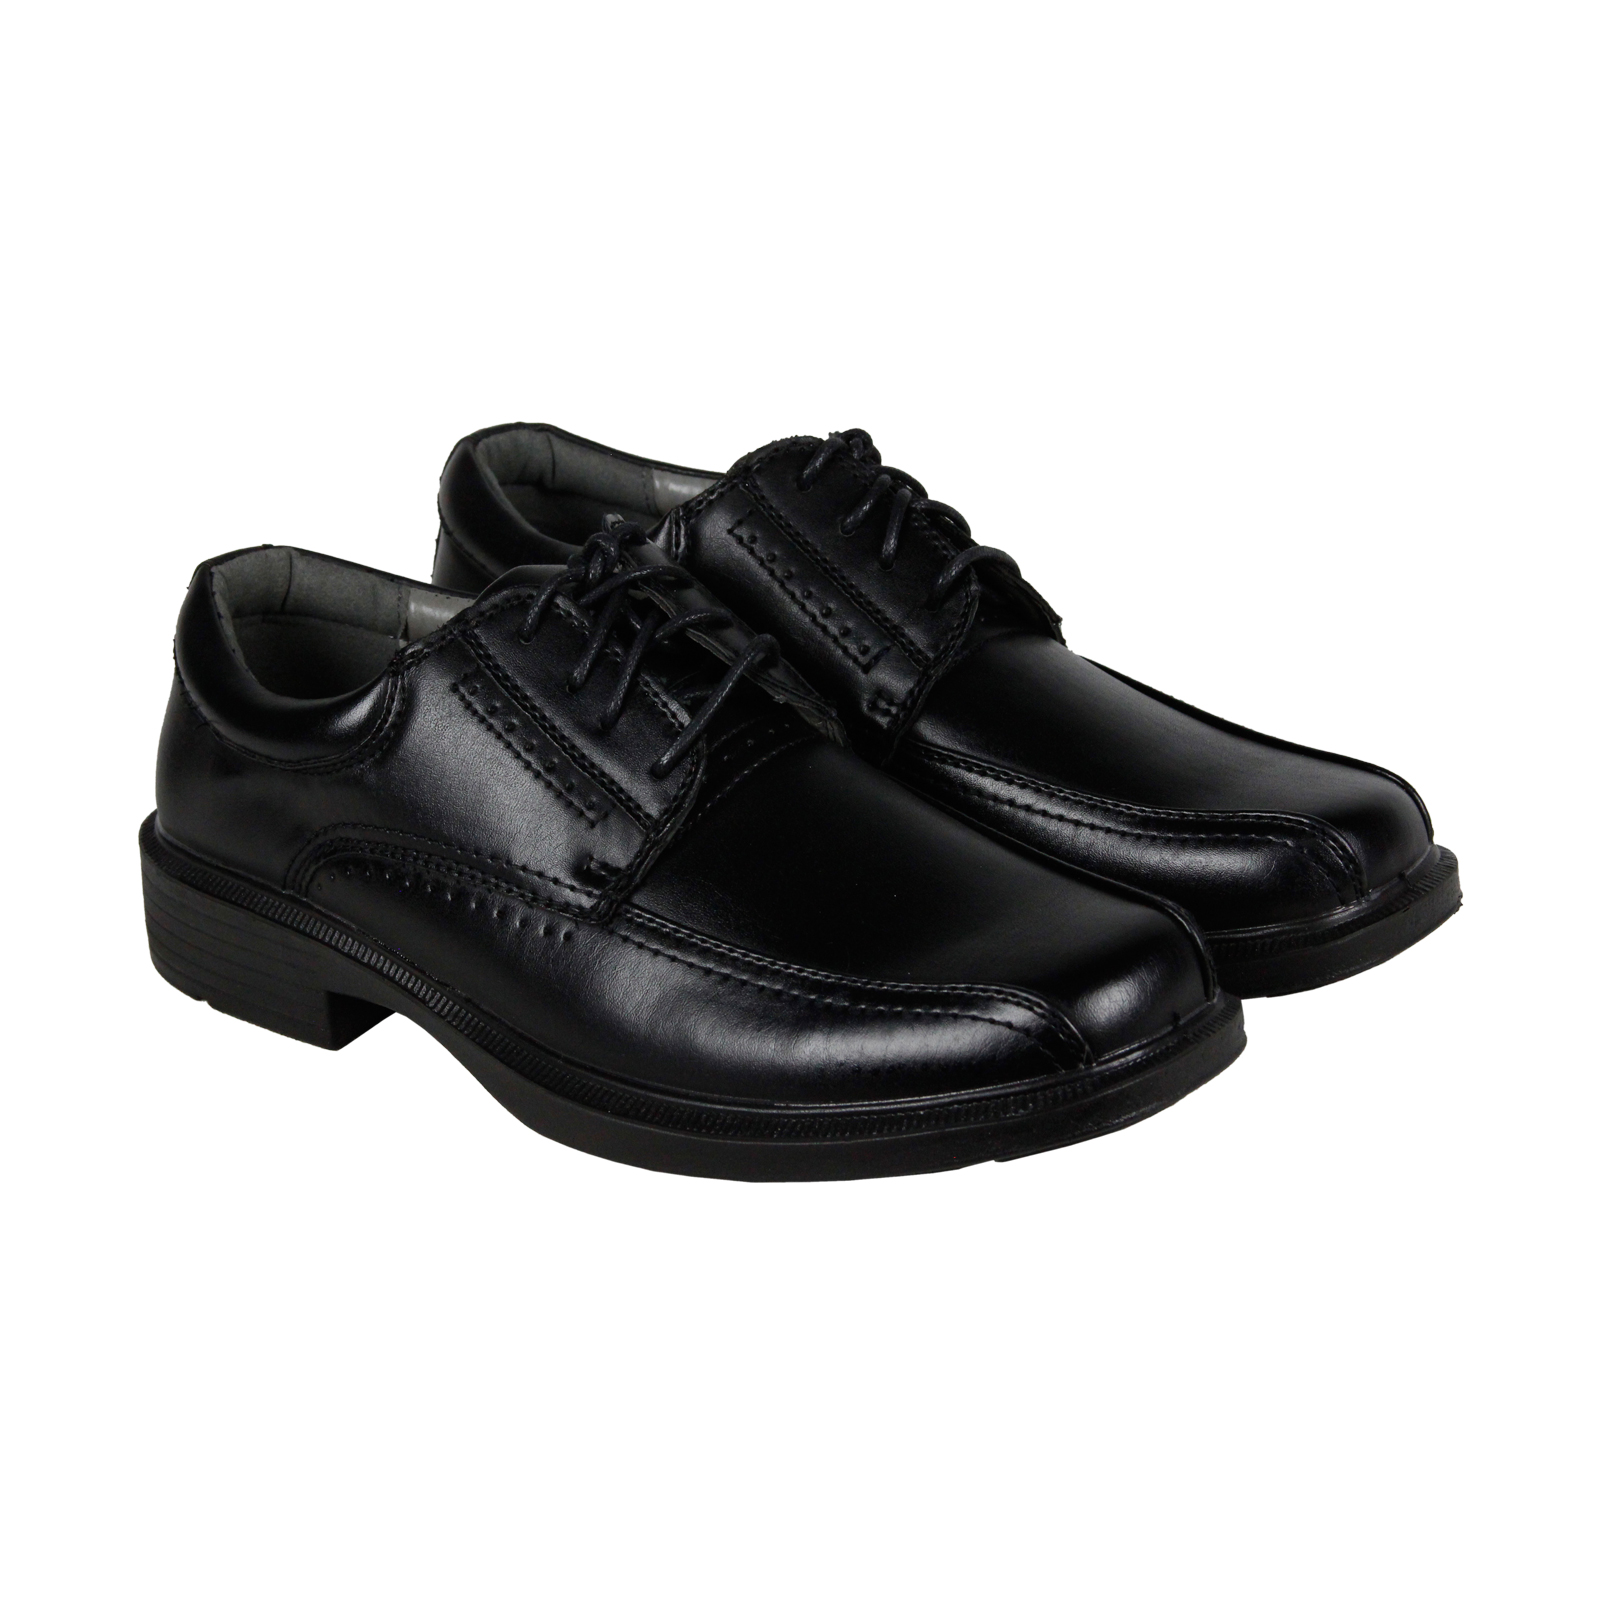 Deer Stags Williamsburg Mens Black Leather Casual Dress Oxfords Shoes by Deer Stags